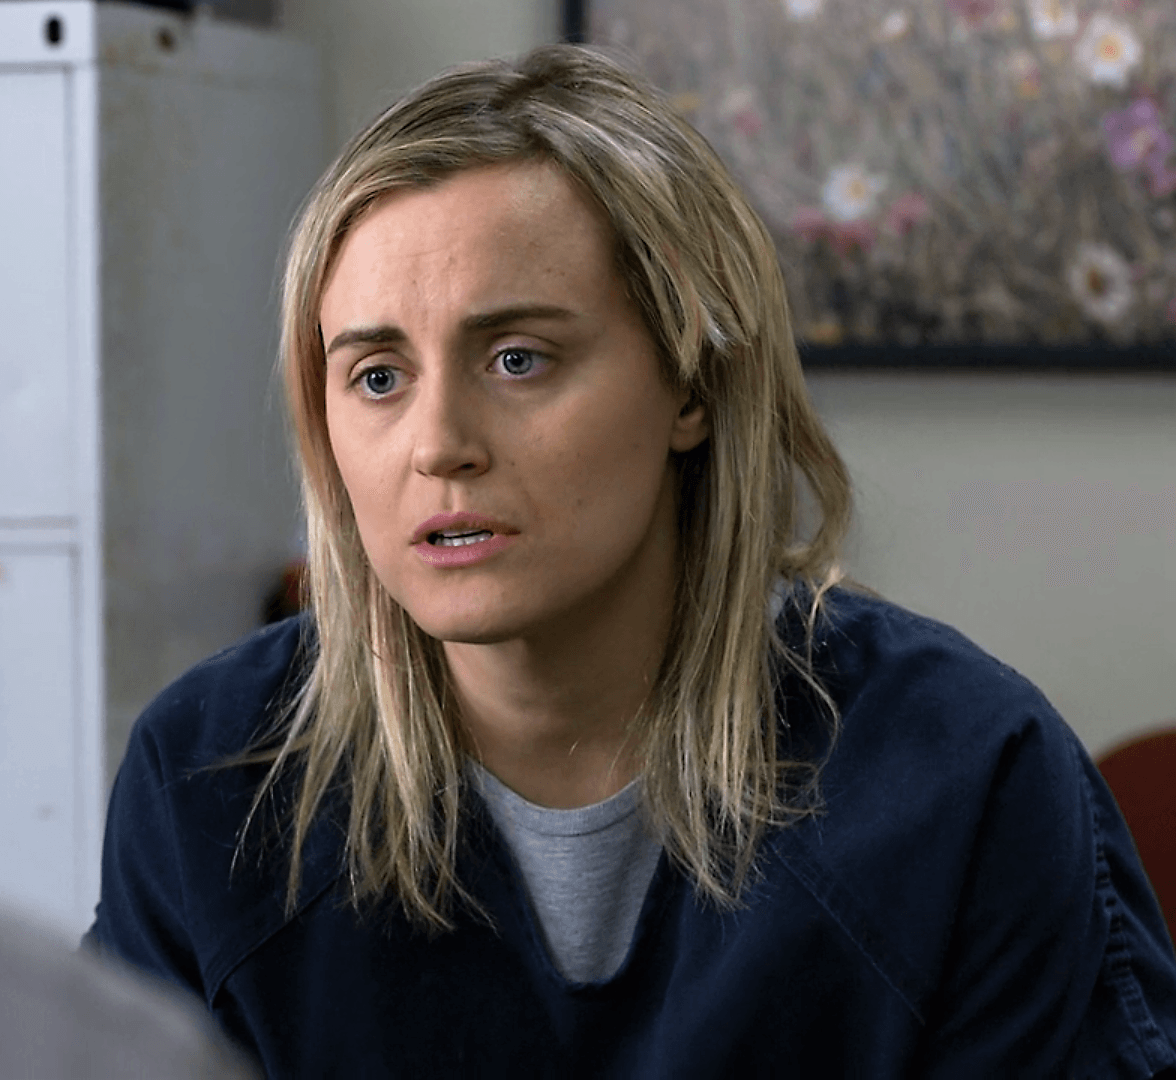 8 piper chapman Here's What The Orange Is The New Black Cast Looks Like In Real Life